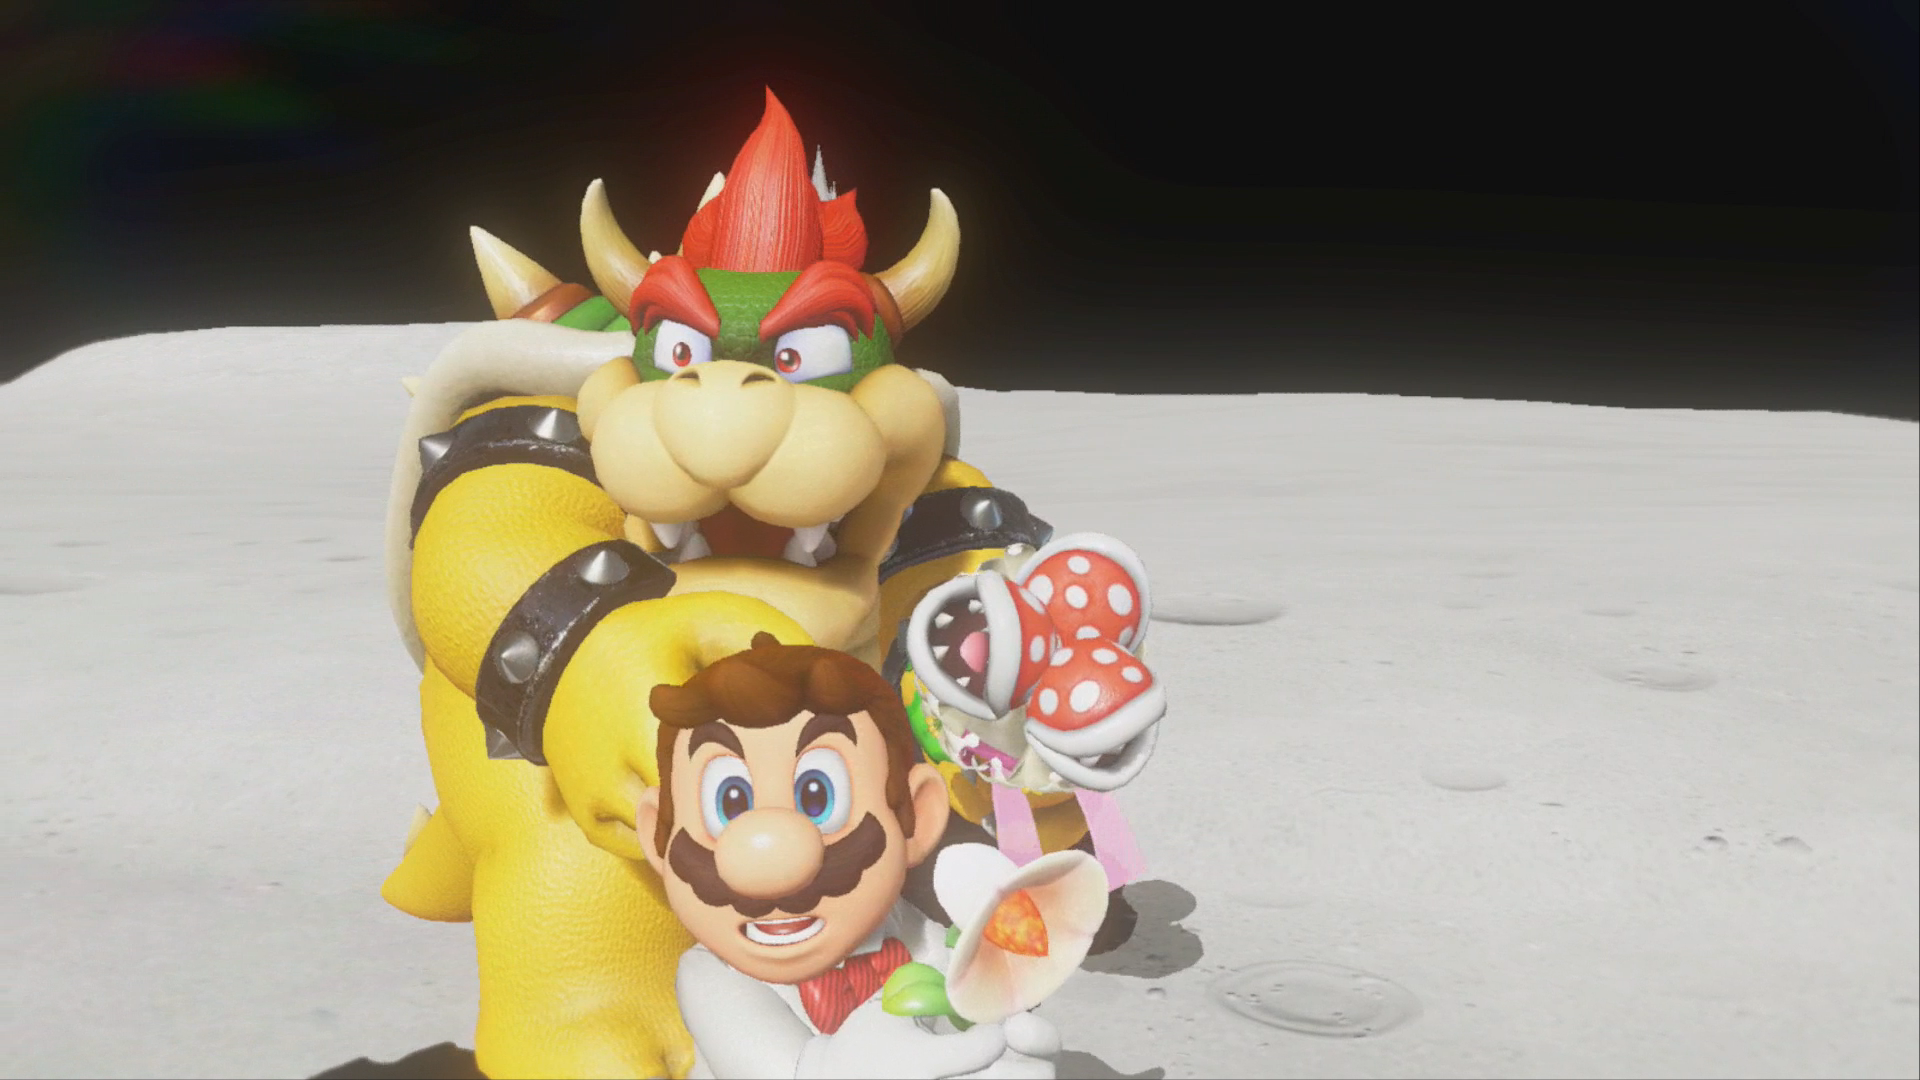 The Look Of Being Rejected Super Mario Odyssey Know Your Meme